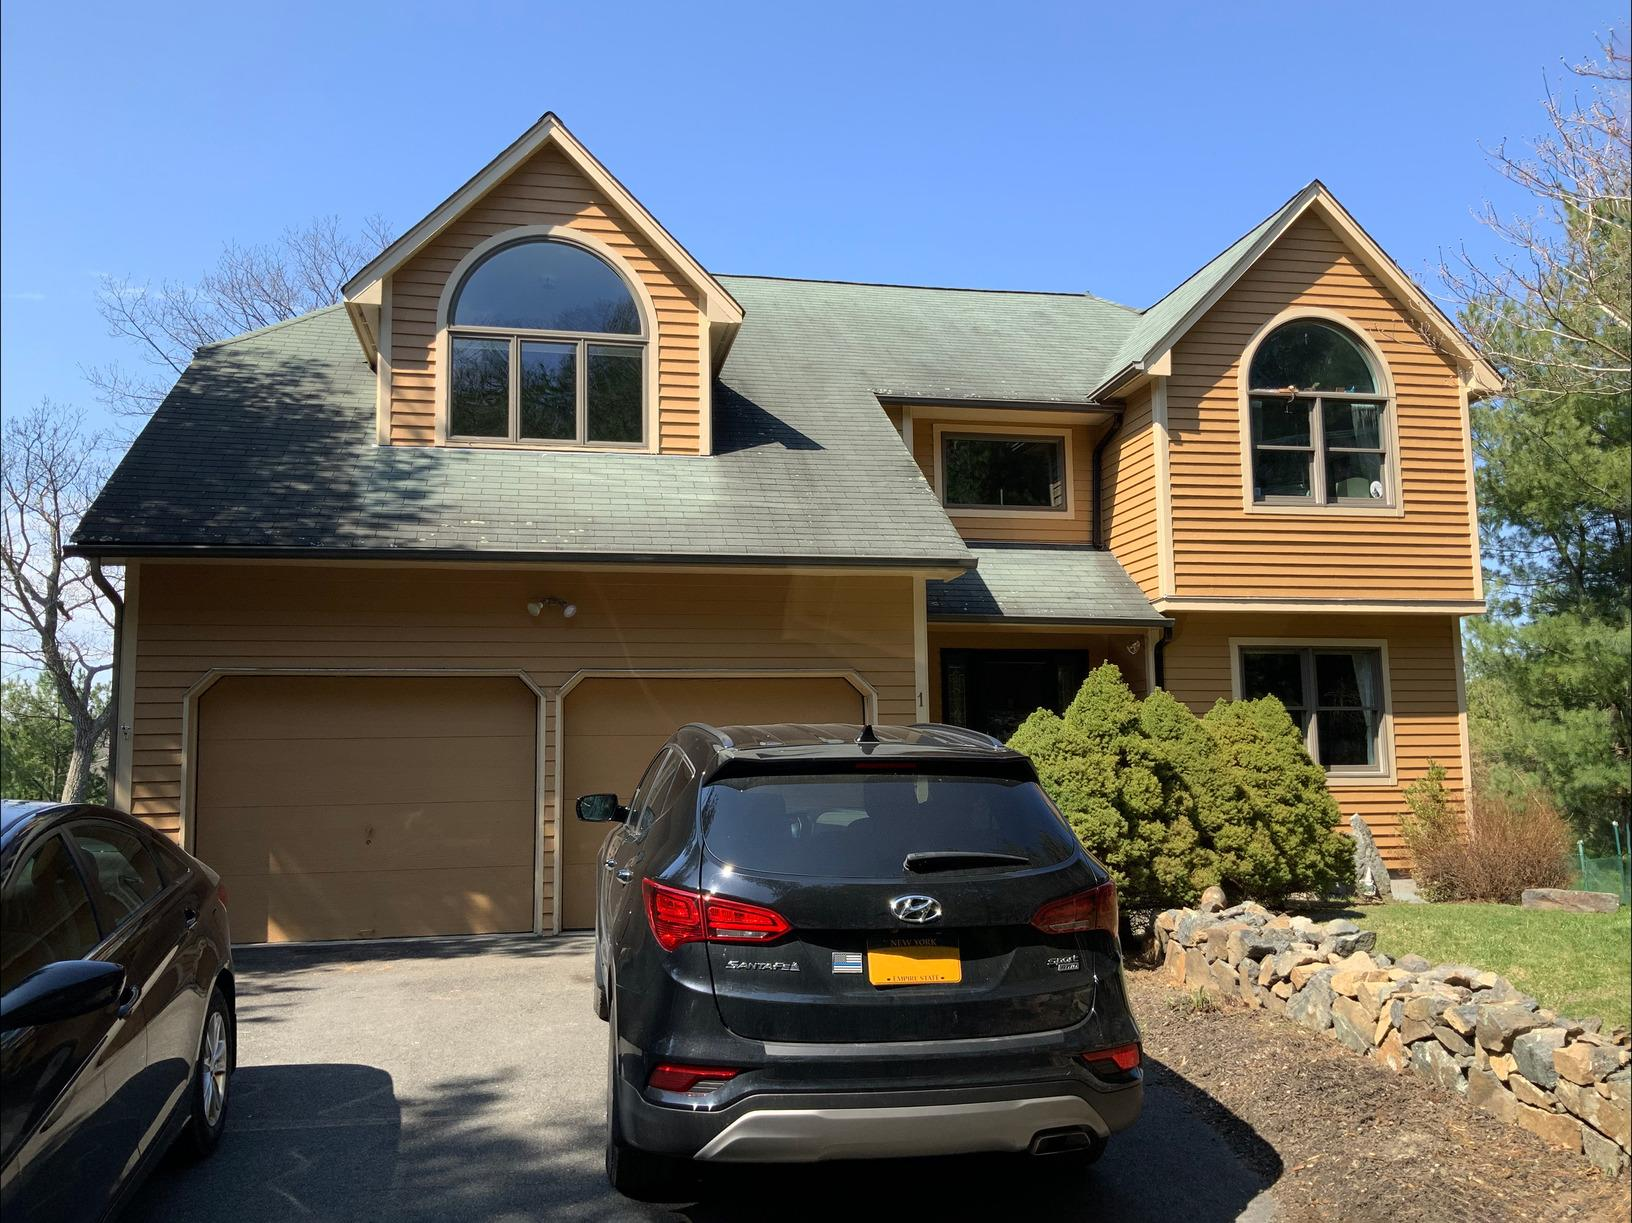 Shadow Brown Roof Replacement in Tuxedo Park, NY - Before Photo